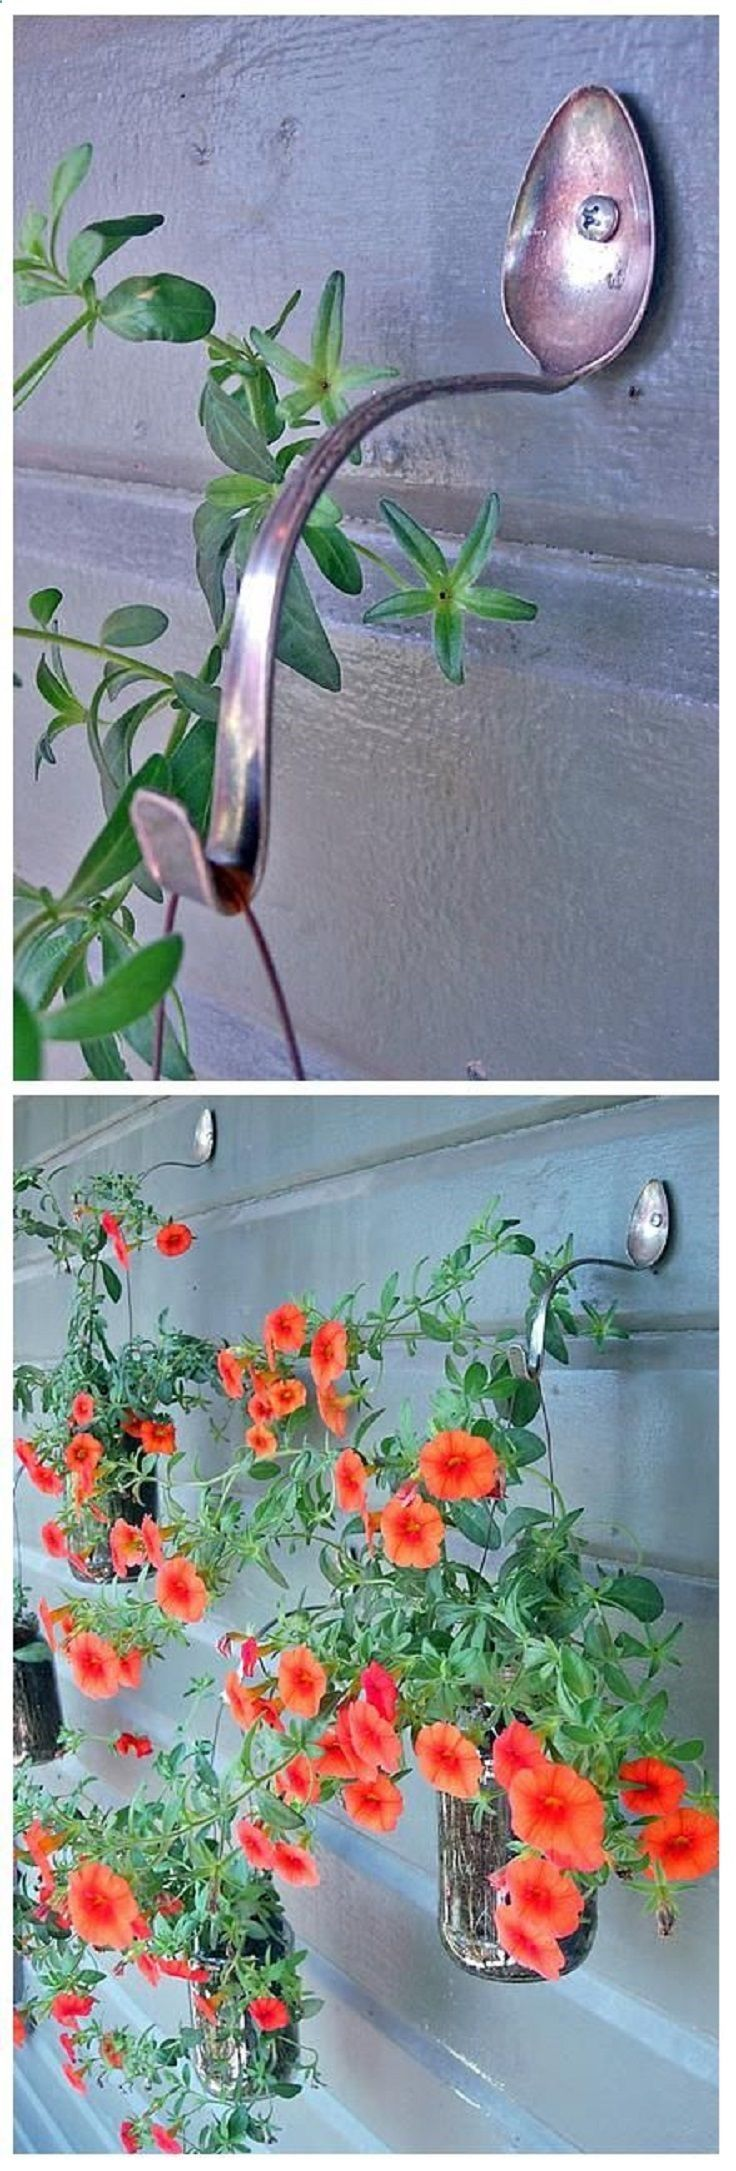 In DIY Upcycling in the garden: thats what you can do with a spoon and a jam jar!